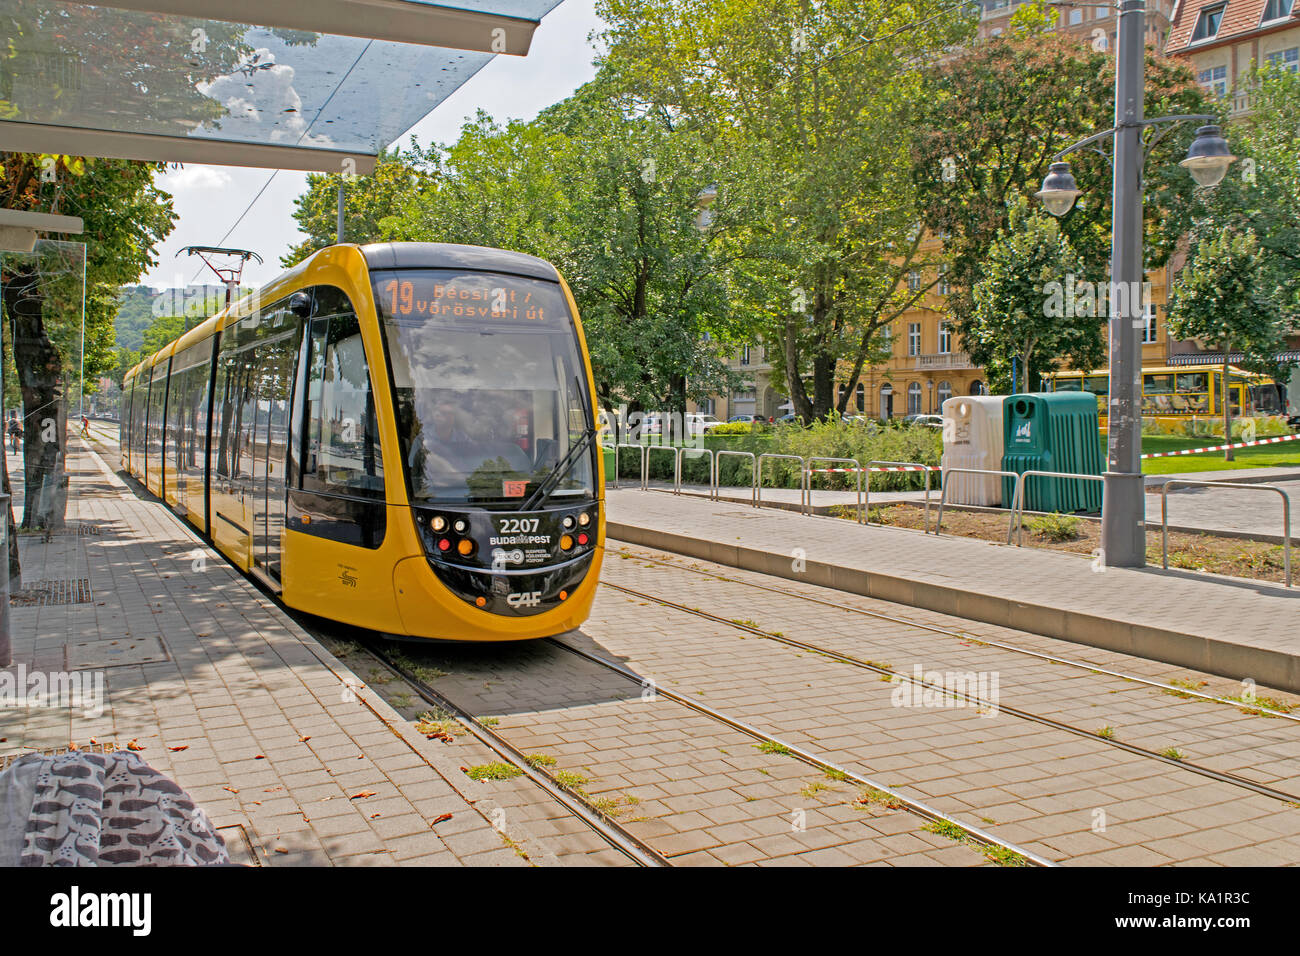 Yellow Tram in Budapest Hungry Stock Photo